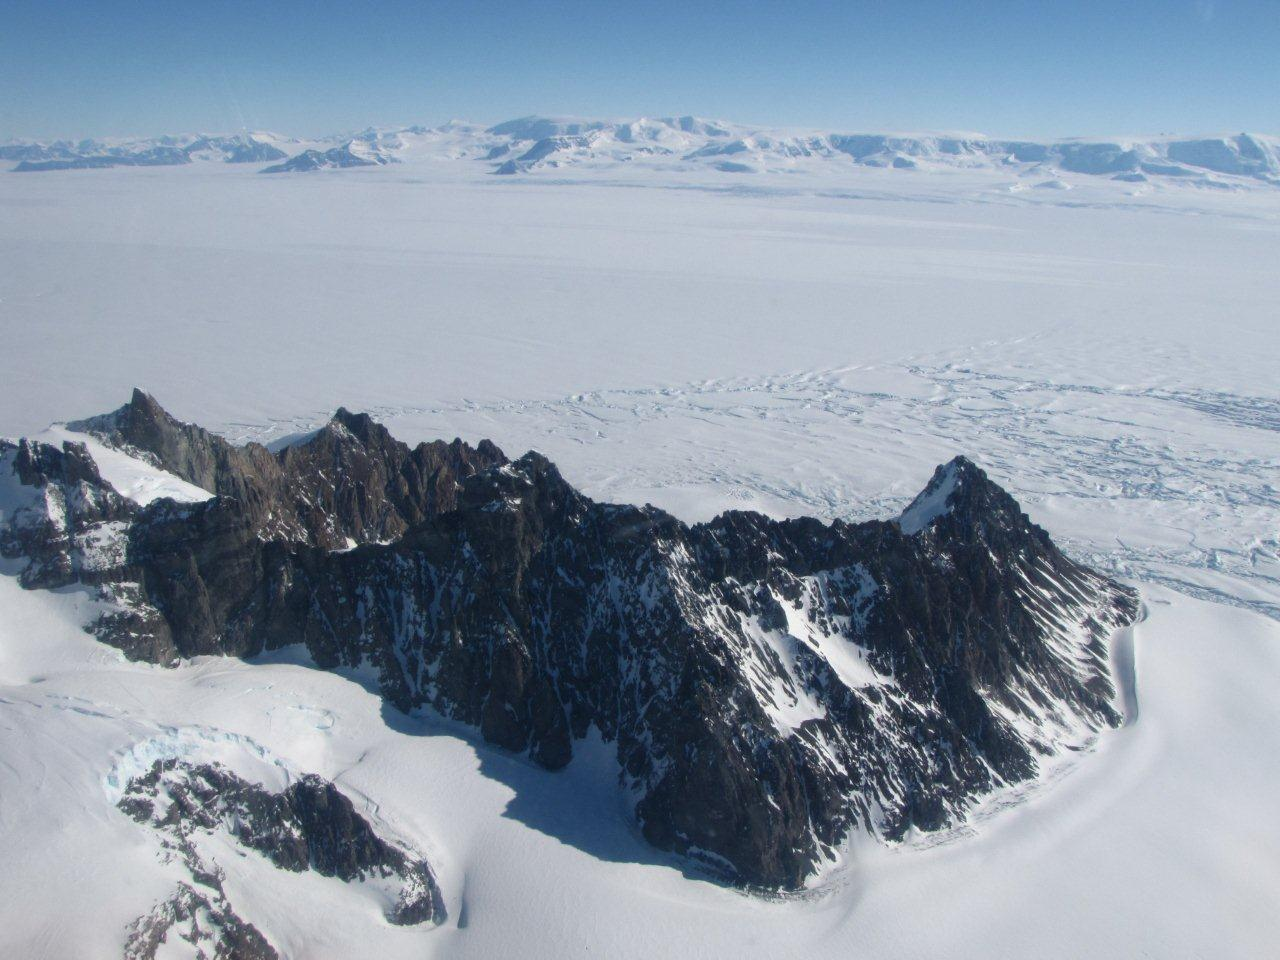 George VI Ice Shelf from Alexander Island (Source: AntarcticGlaciers.org)